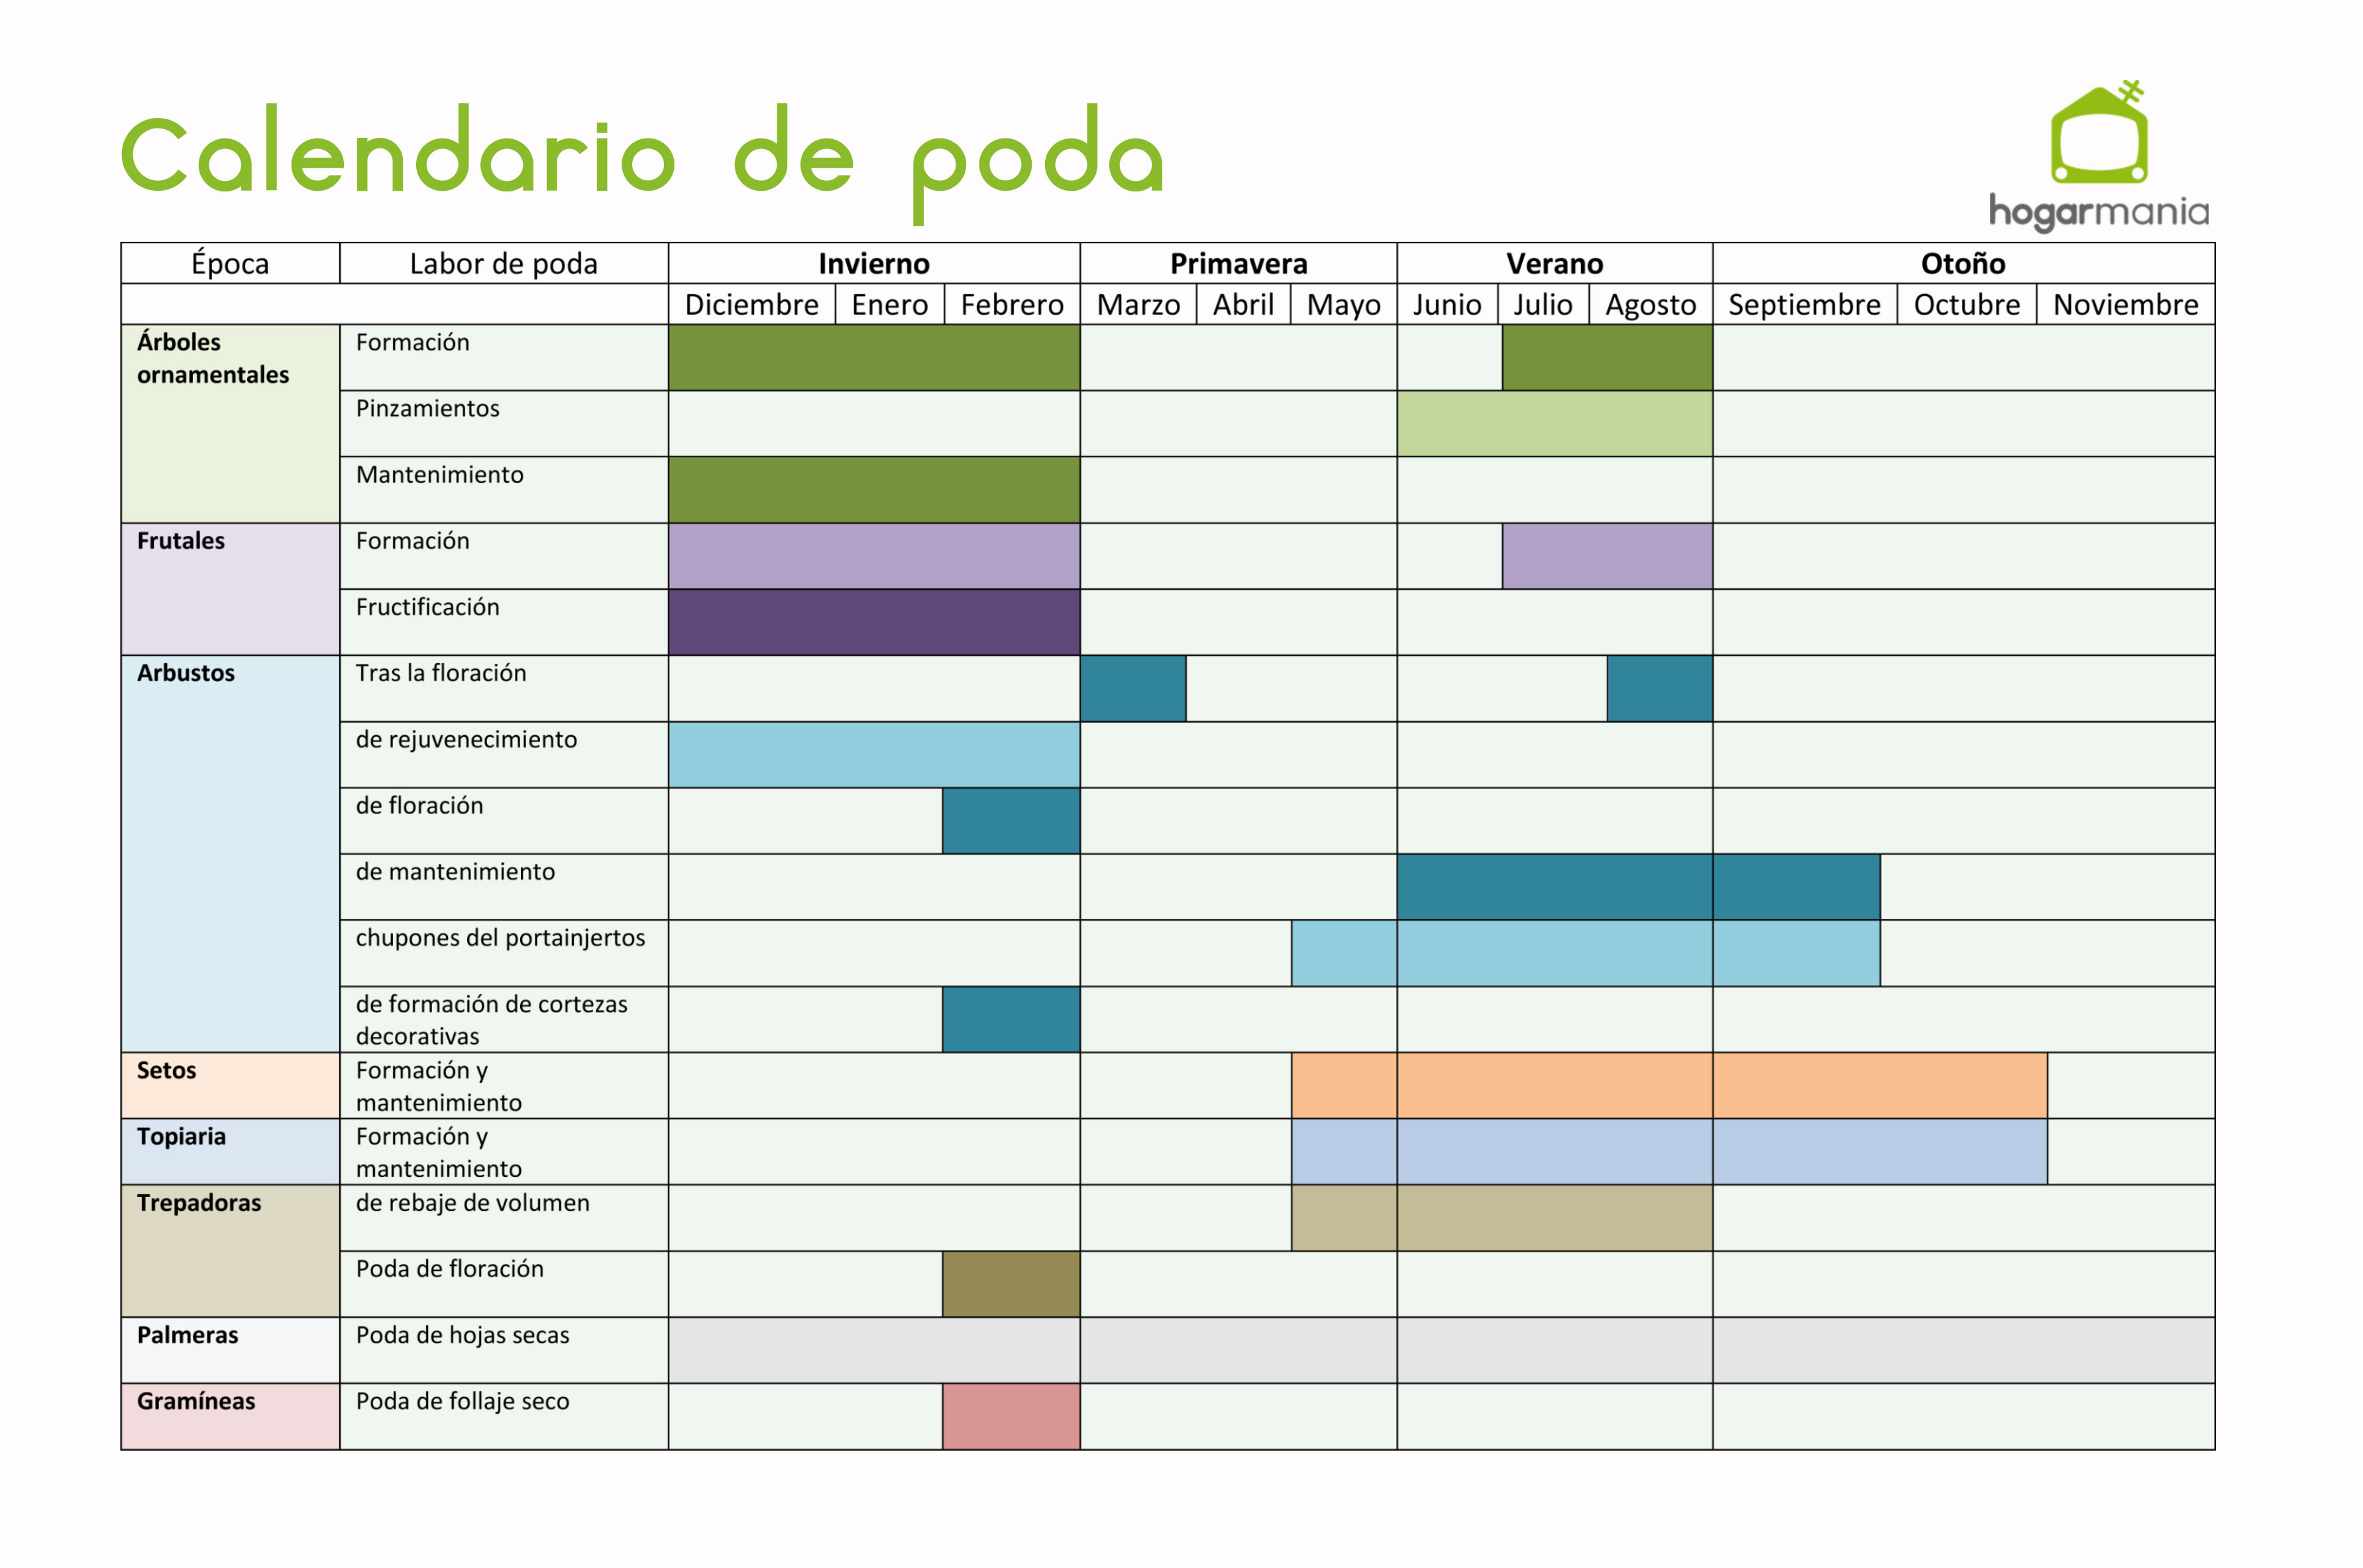 calendario de poda hogarmania